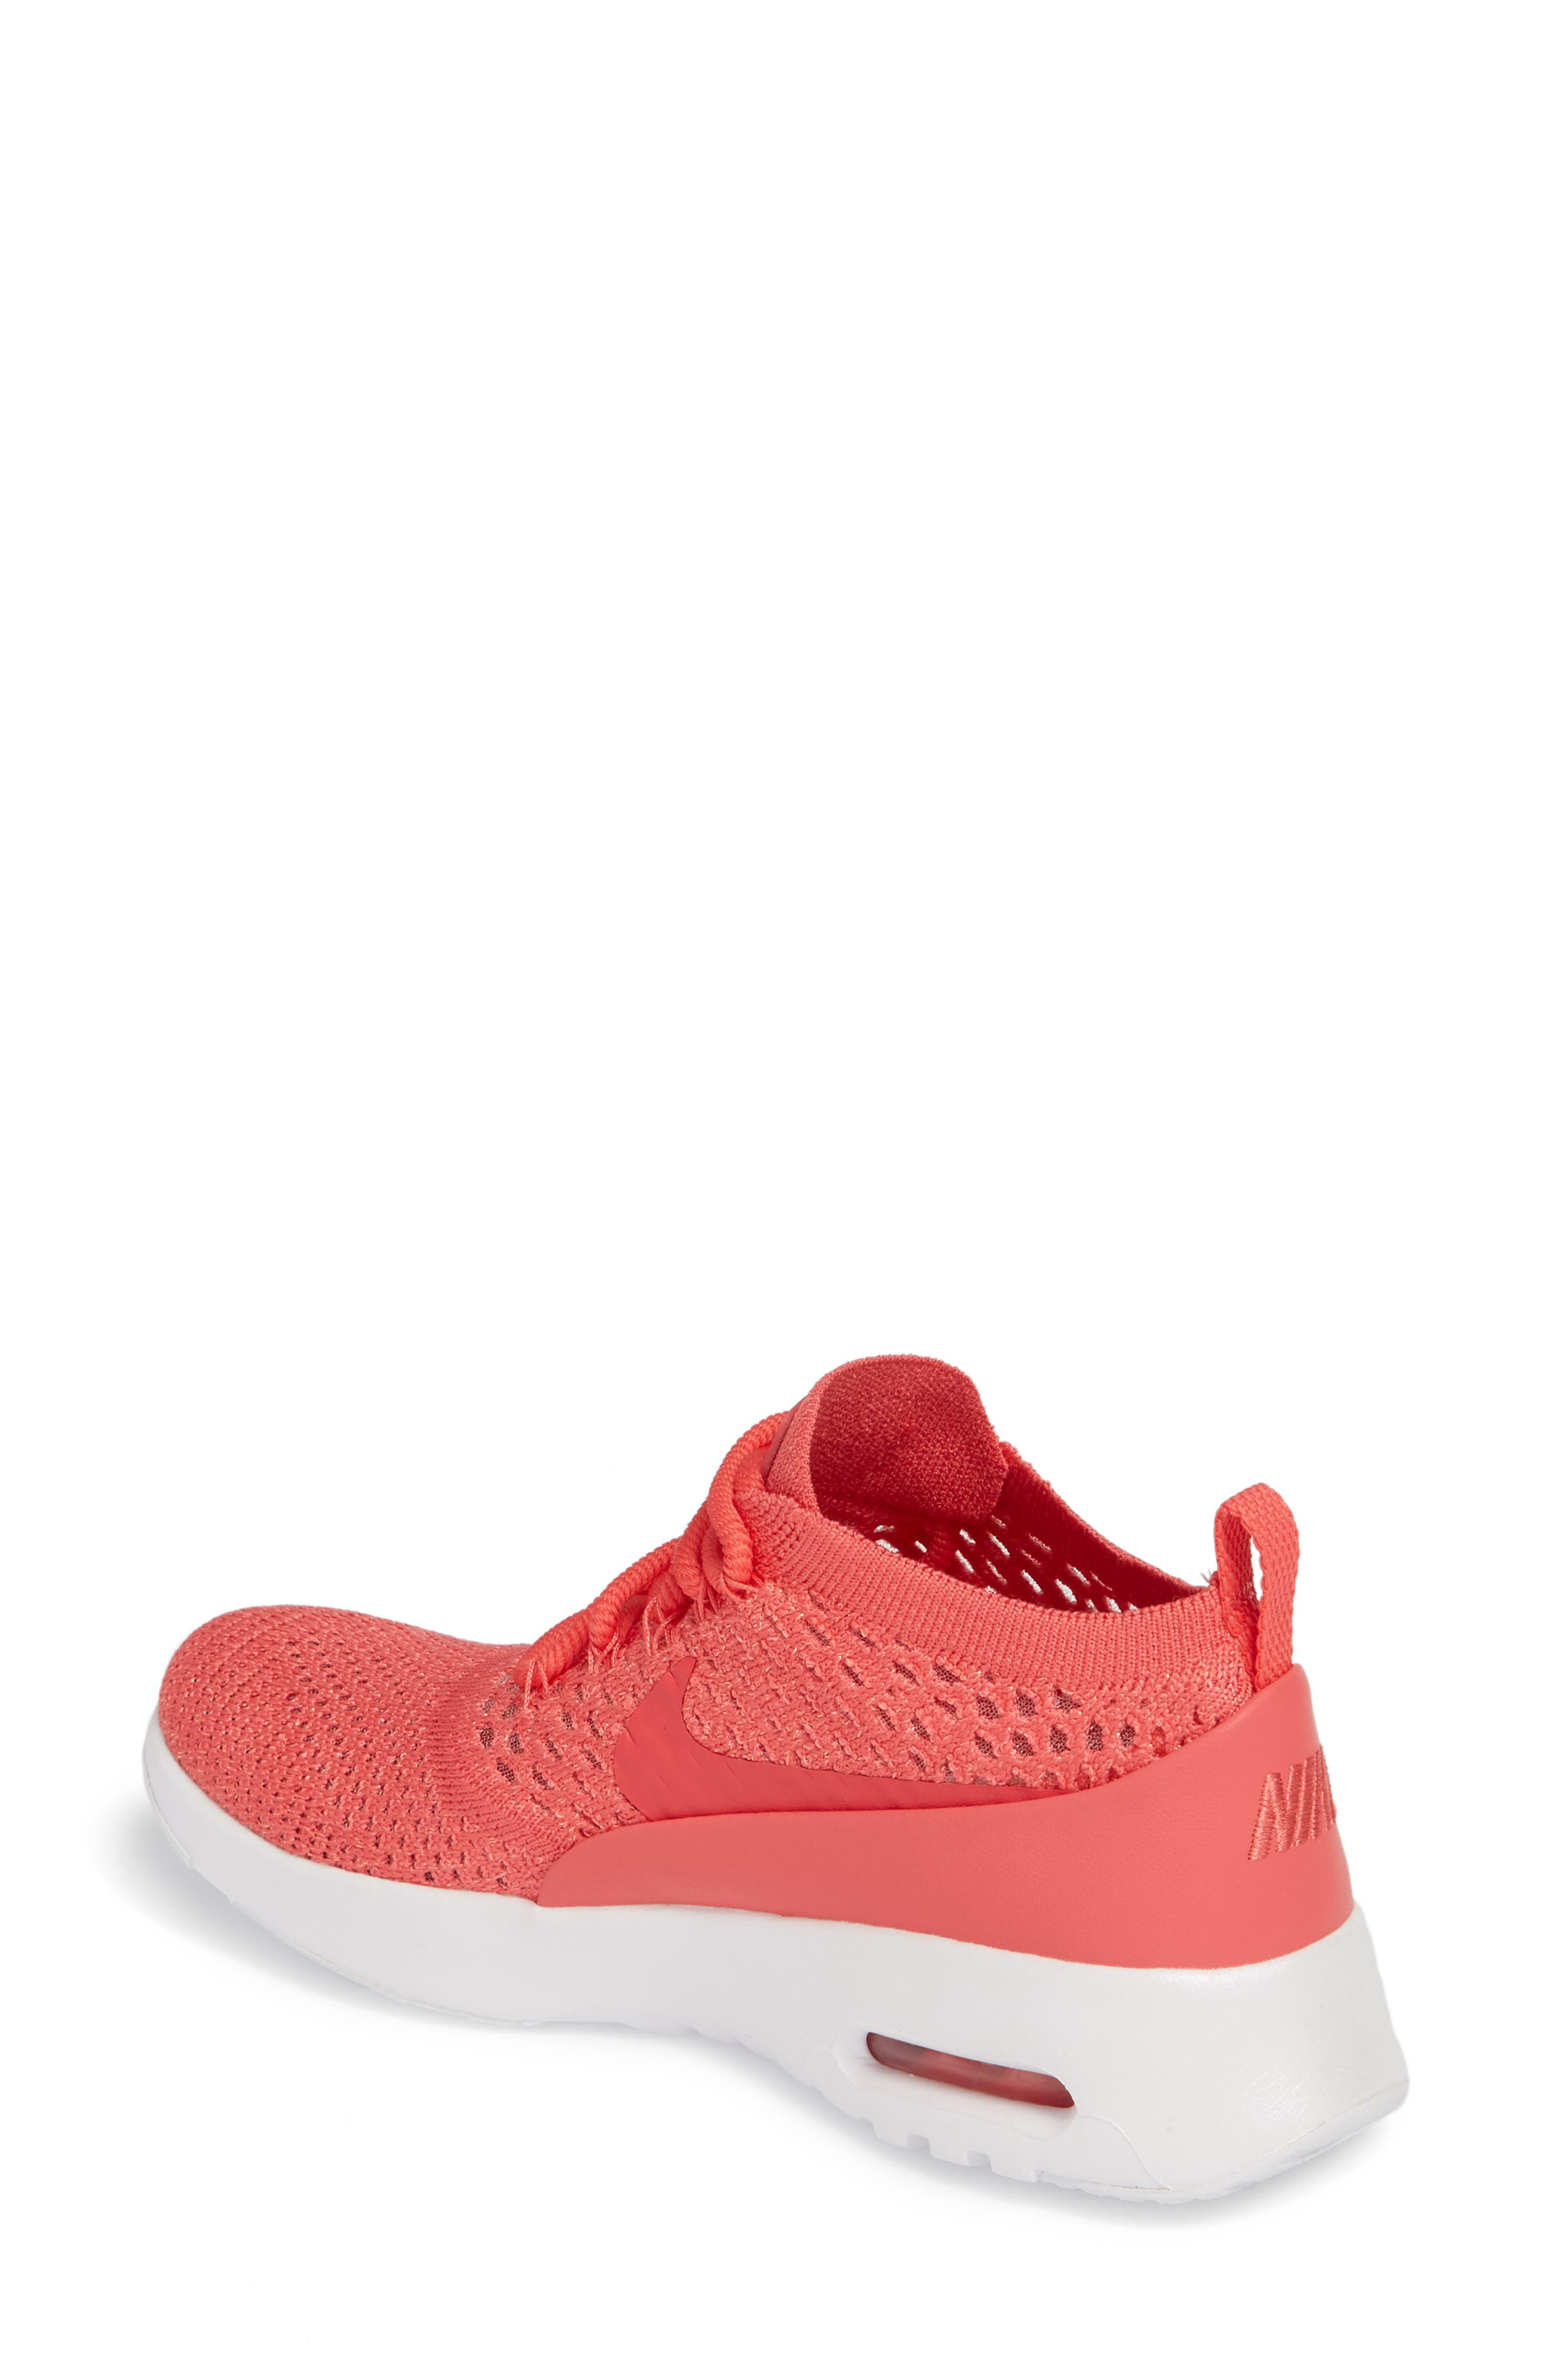 Air Max Thea Ultra Flyknit Sneaker,                             Alternate thumbnail 2, color,                             Geranium/ Geranium